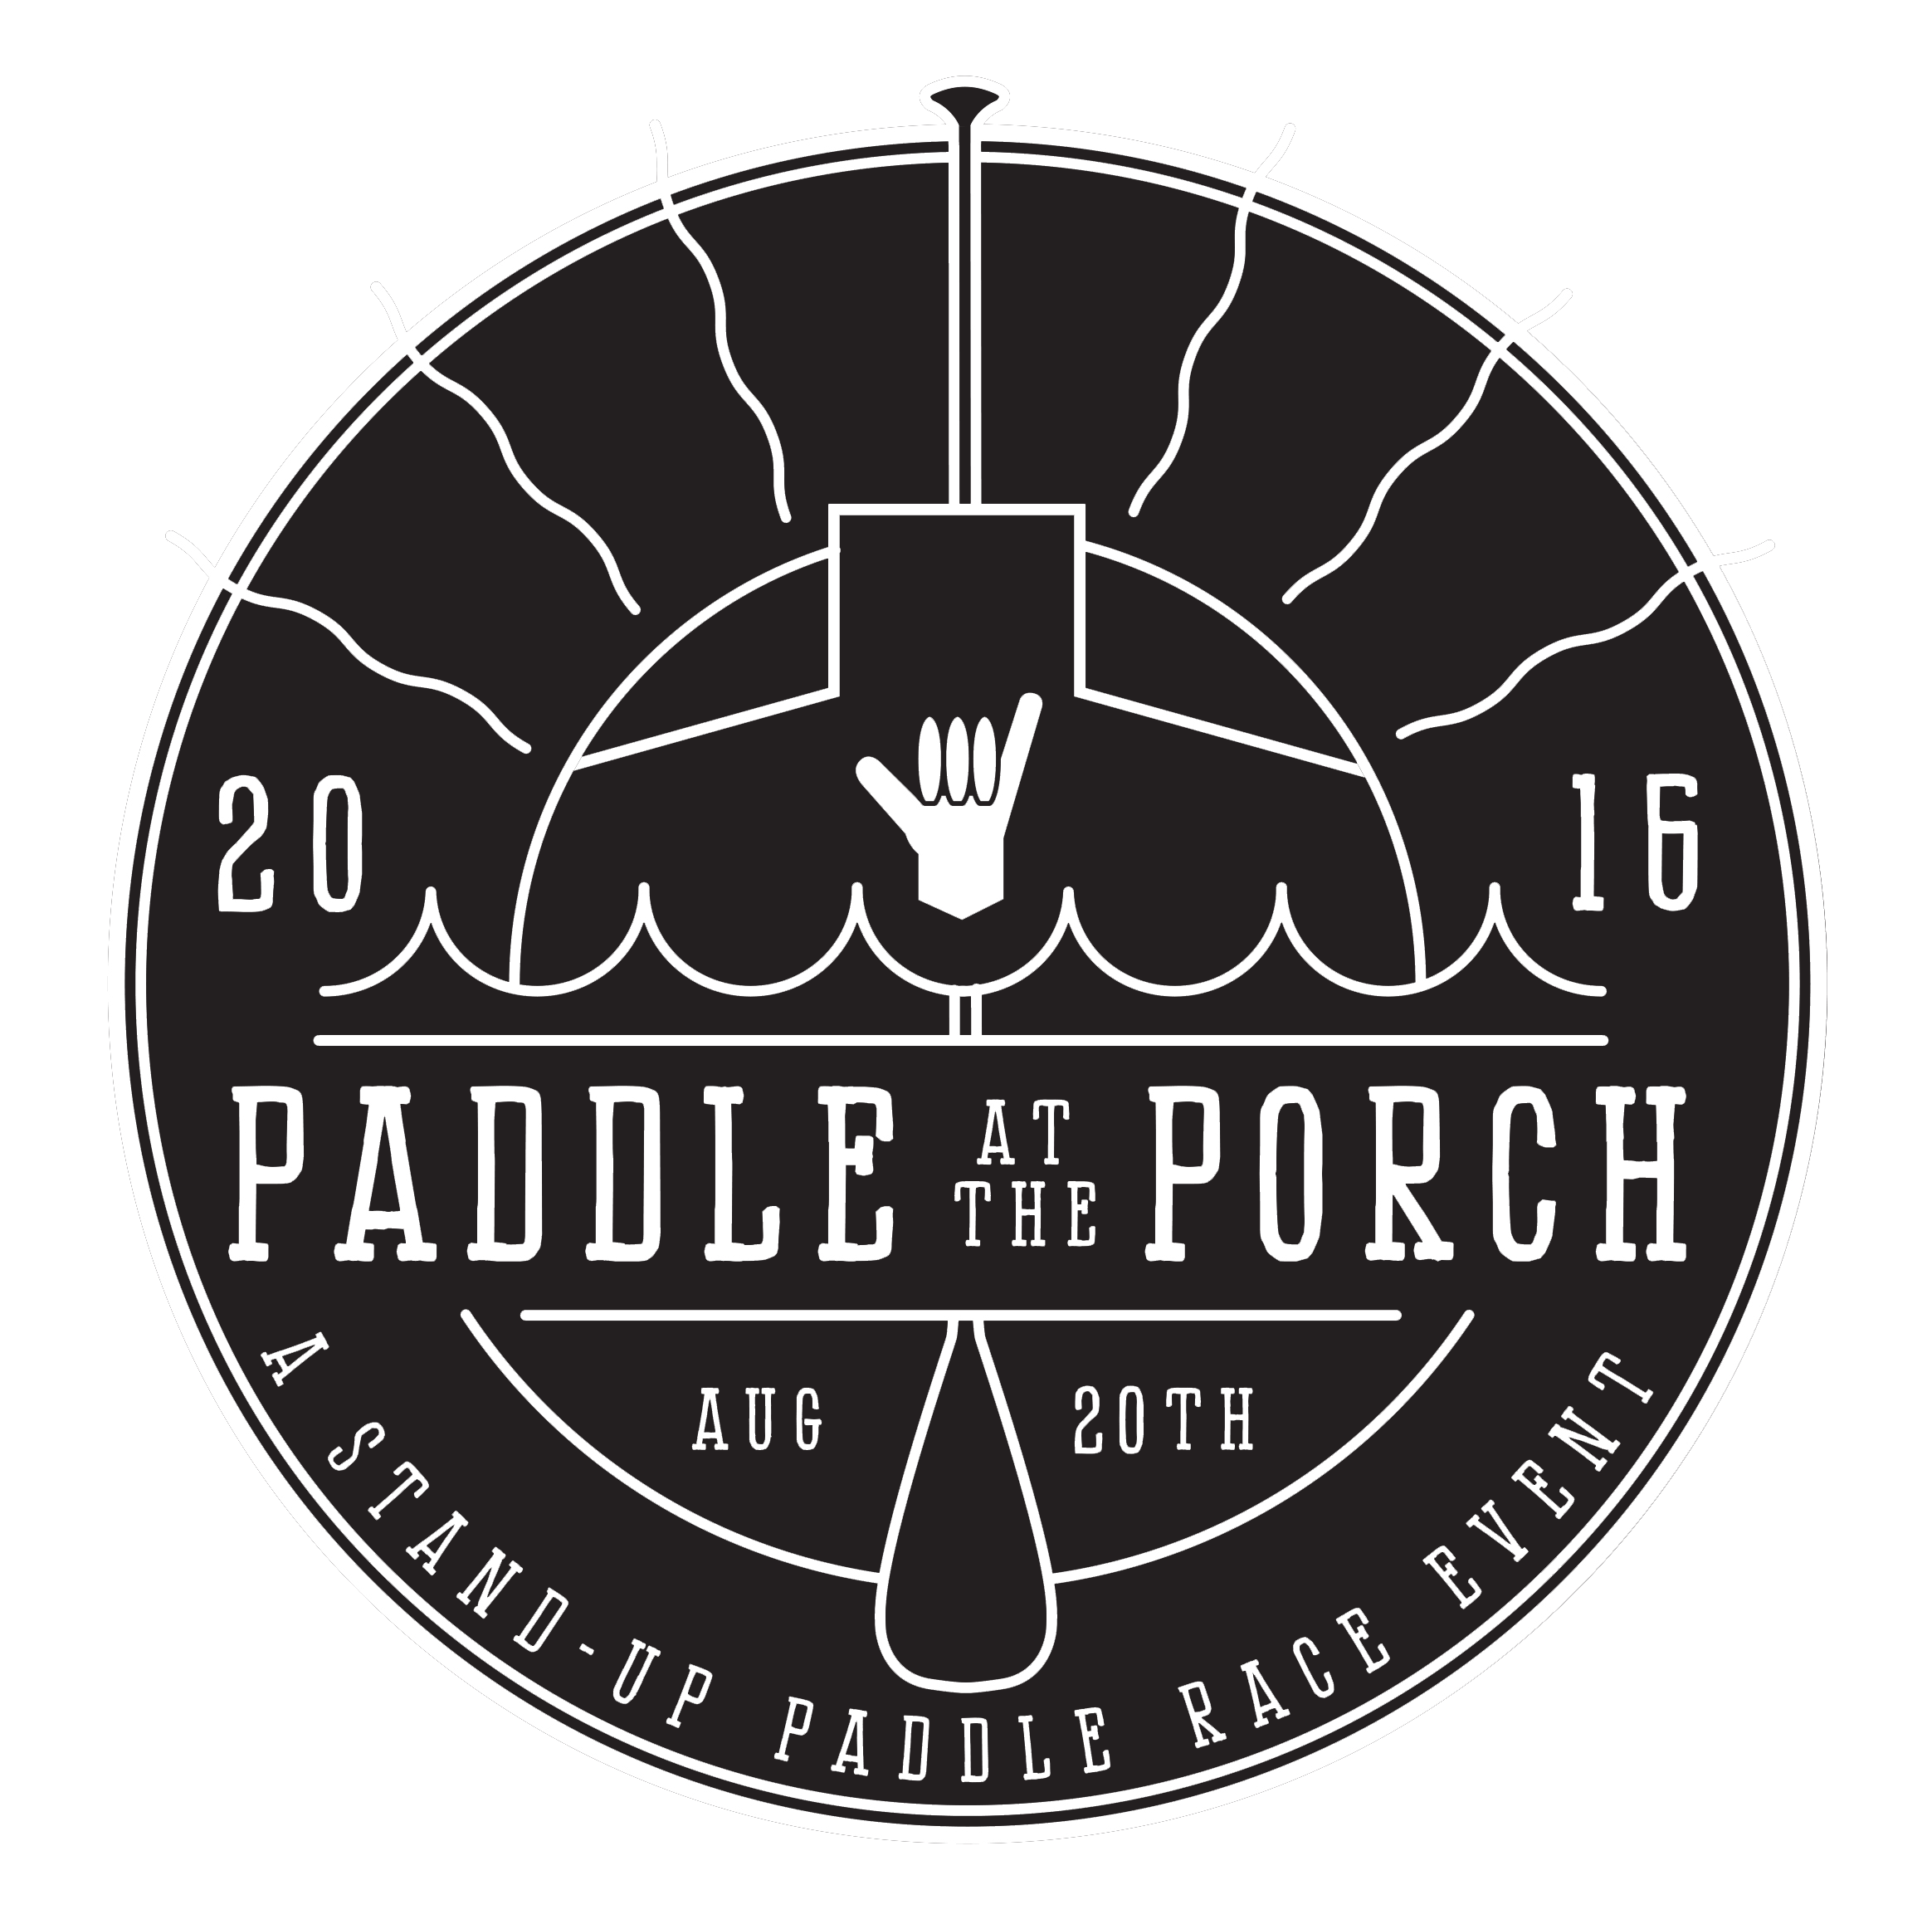 Paddle at the Porch Logo